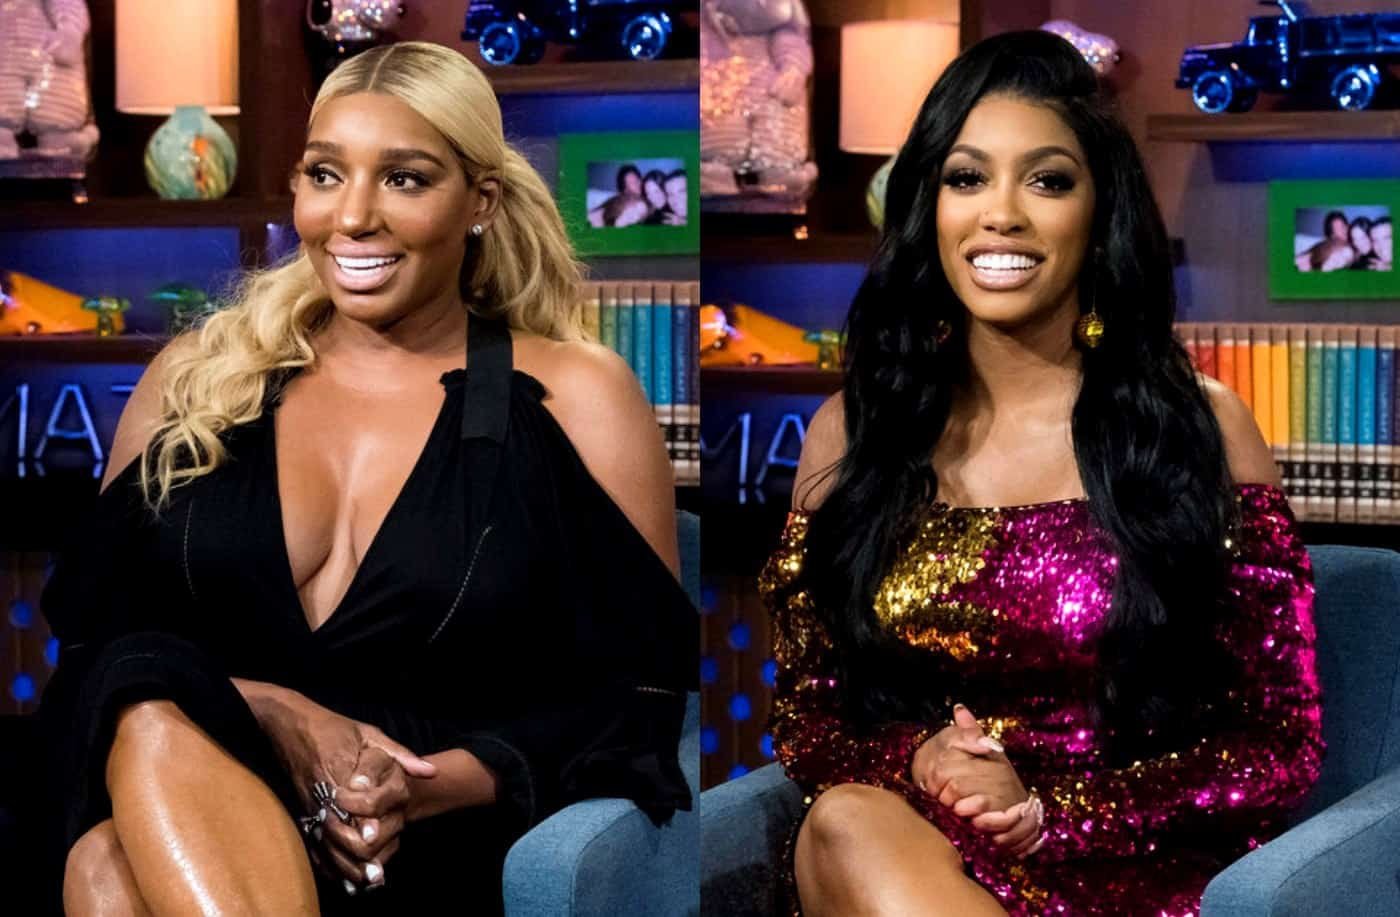 RHOA Nene Leakes and Porsha Williams Instagram Feud